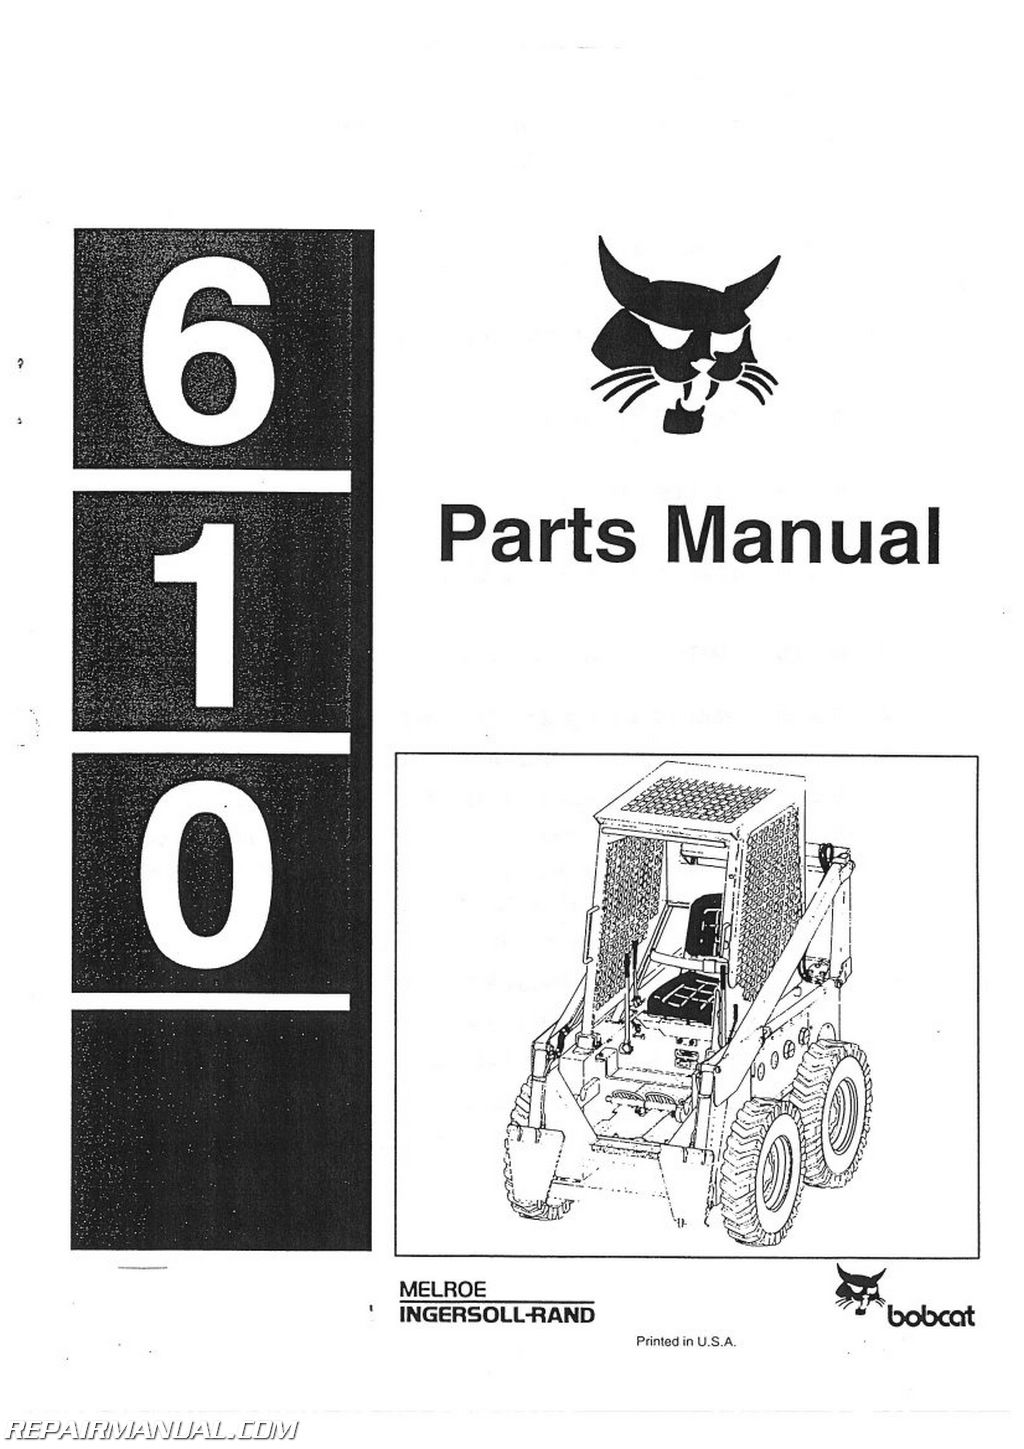 bobcat 610 parts manual rh repairmanual com Bobcat 610 Engine Bobcat 610 Specifications